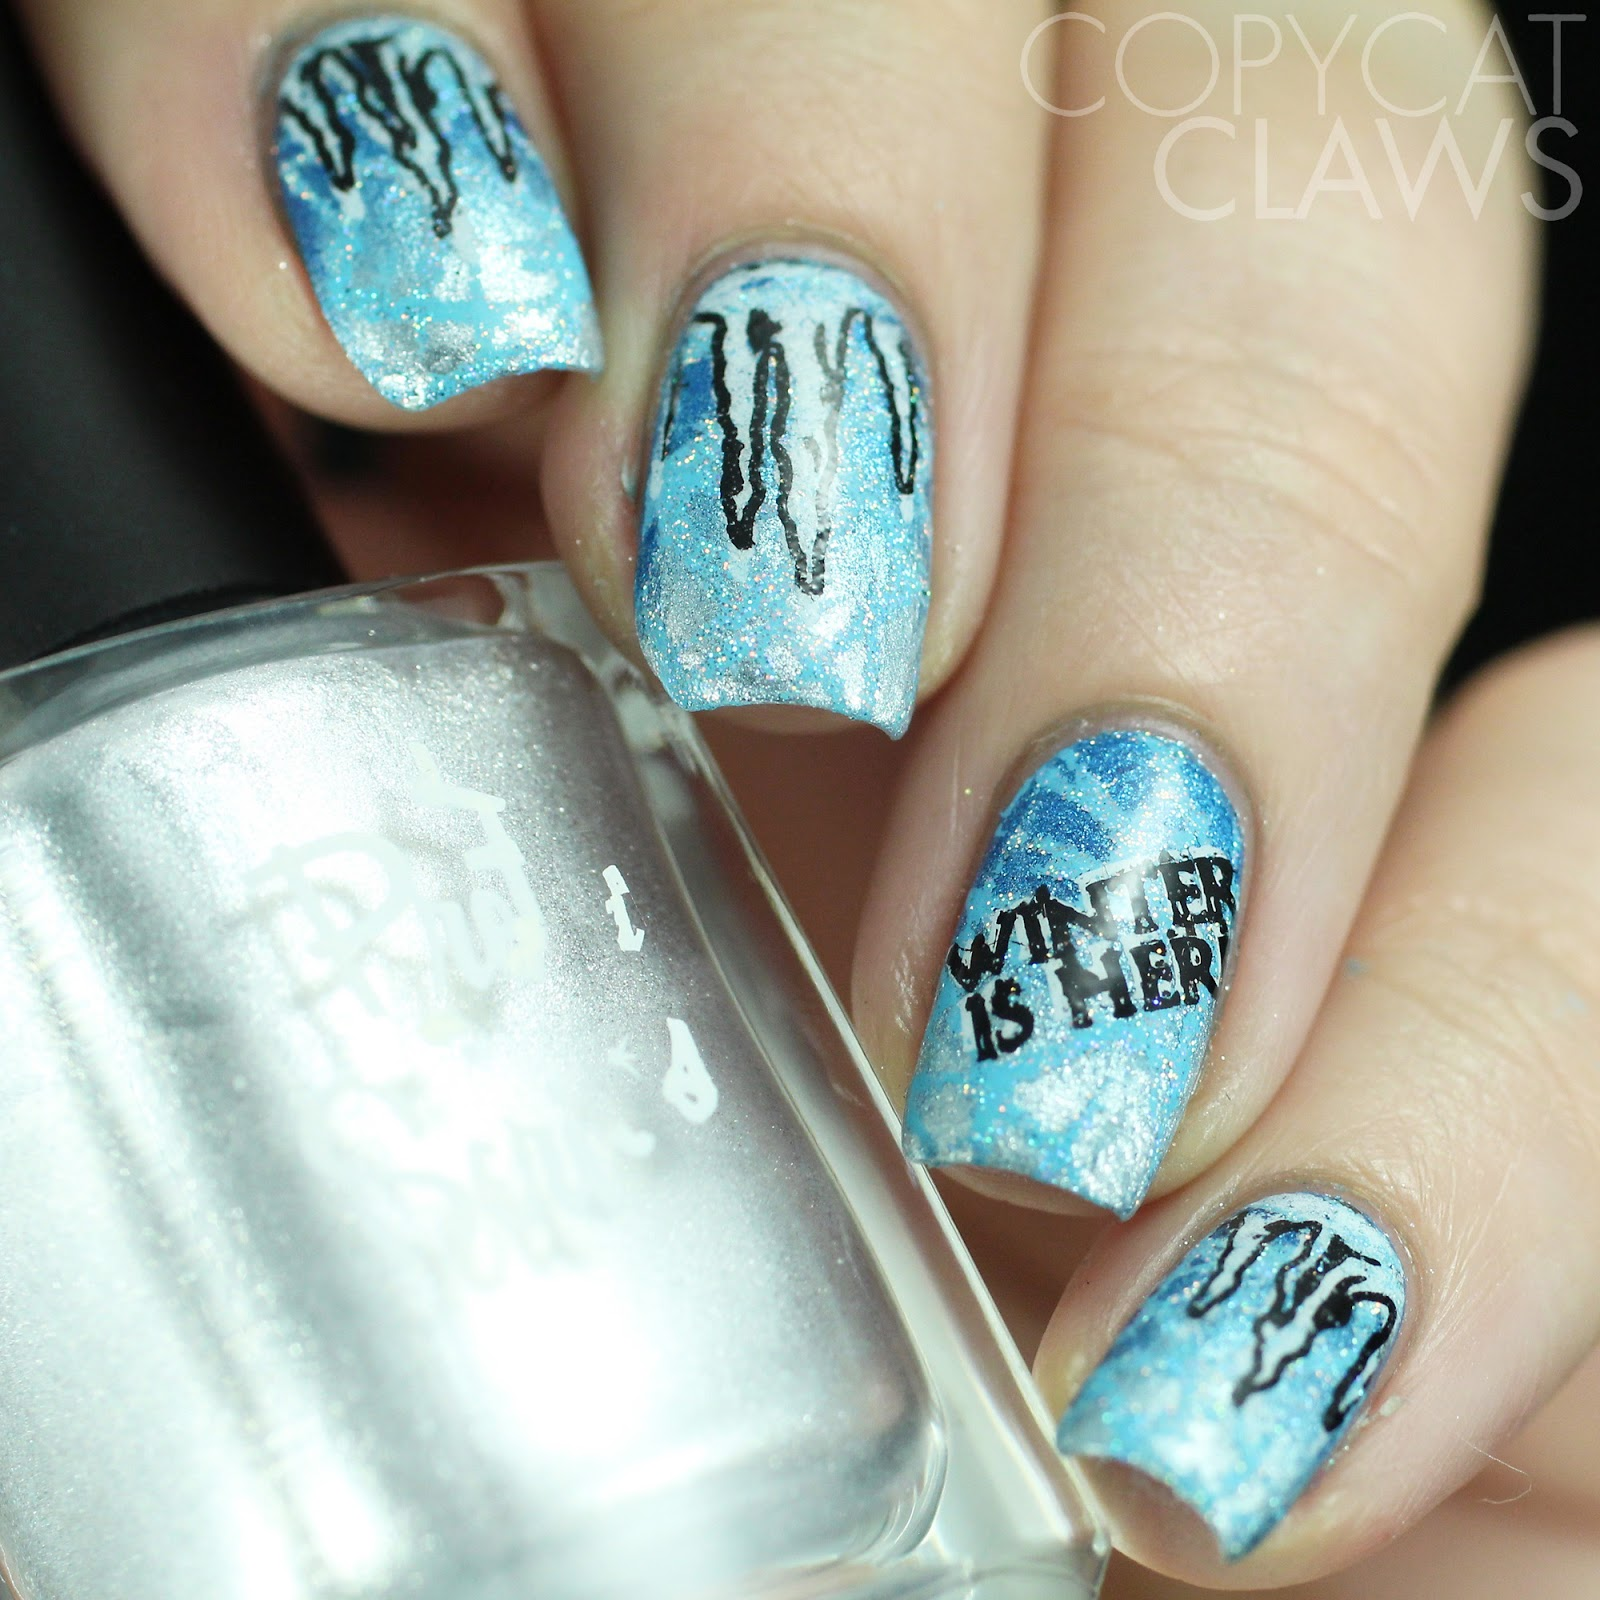 Copycat Claws: The Digit-al Dozen does All That Glitters/Nail ...